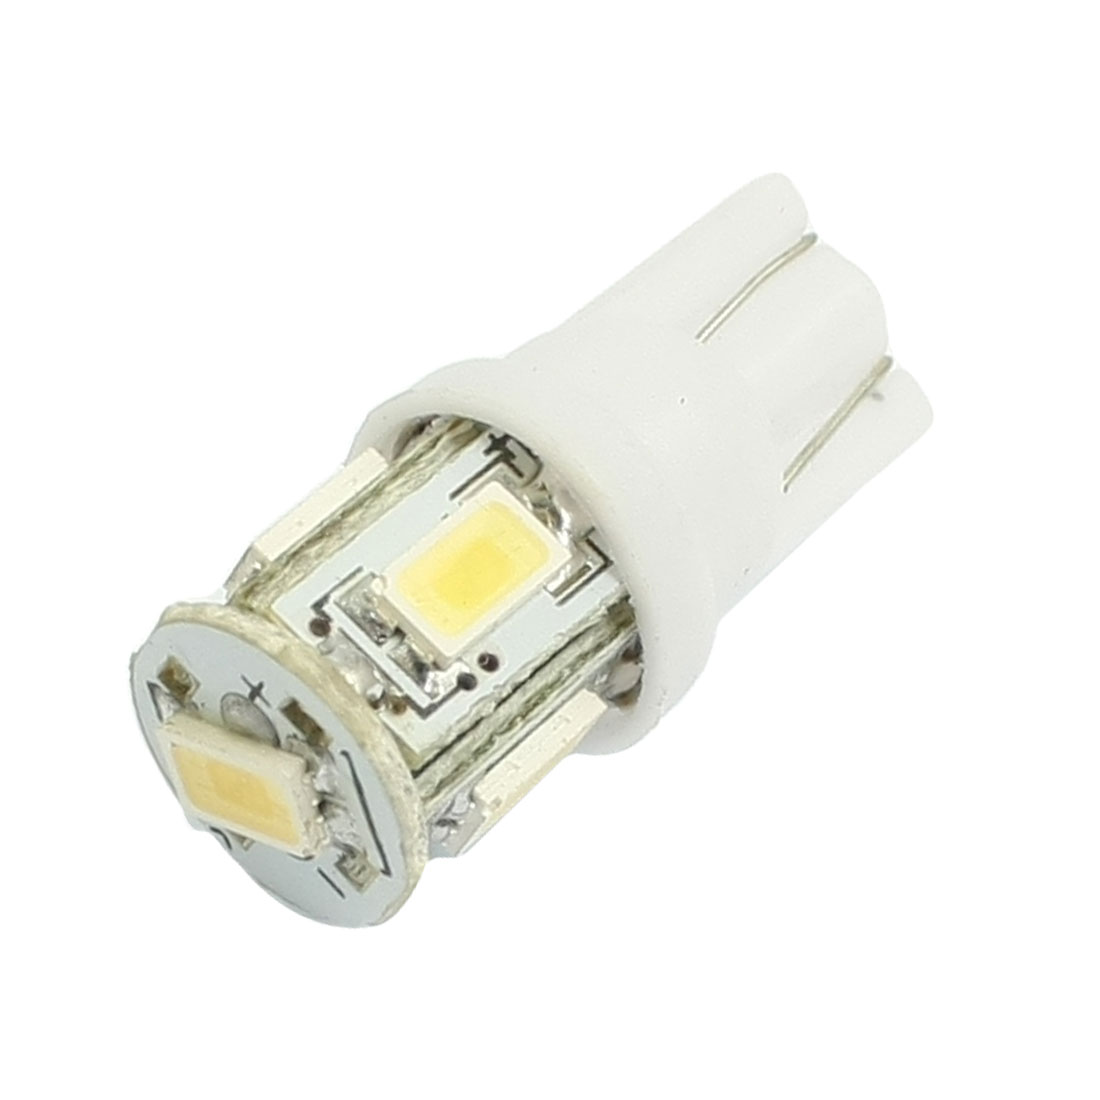 Vehicle Car T10 5 LED 5630 SMD White W5W Car Side Wedge Light Lamp Bulbs